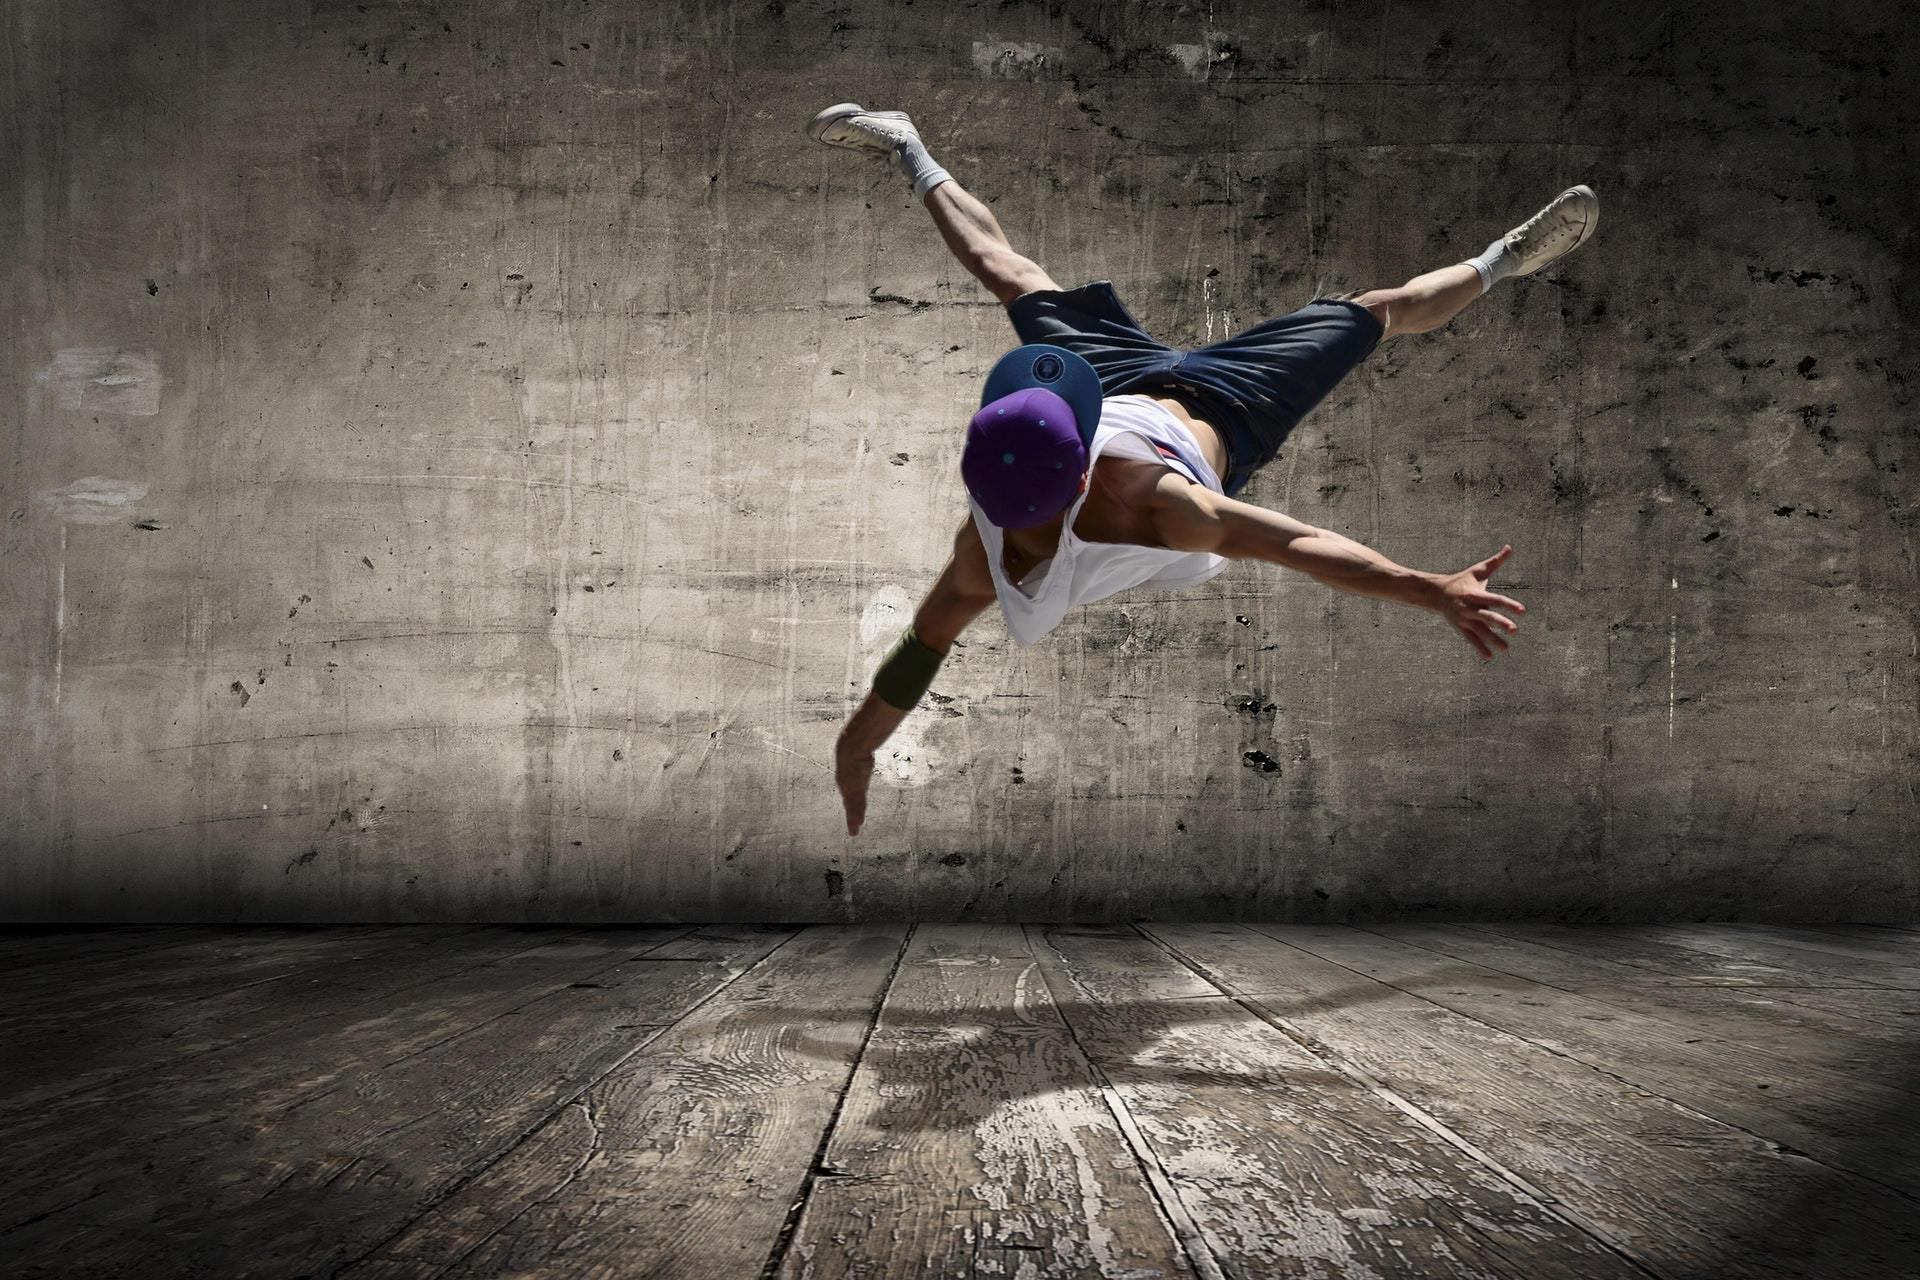 Thirsty for Wisdom of the Body, Finding It in Dance